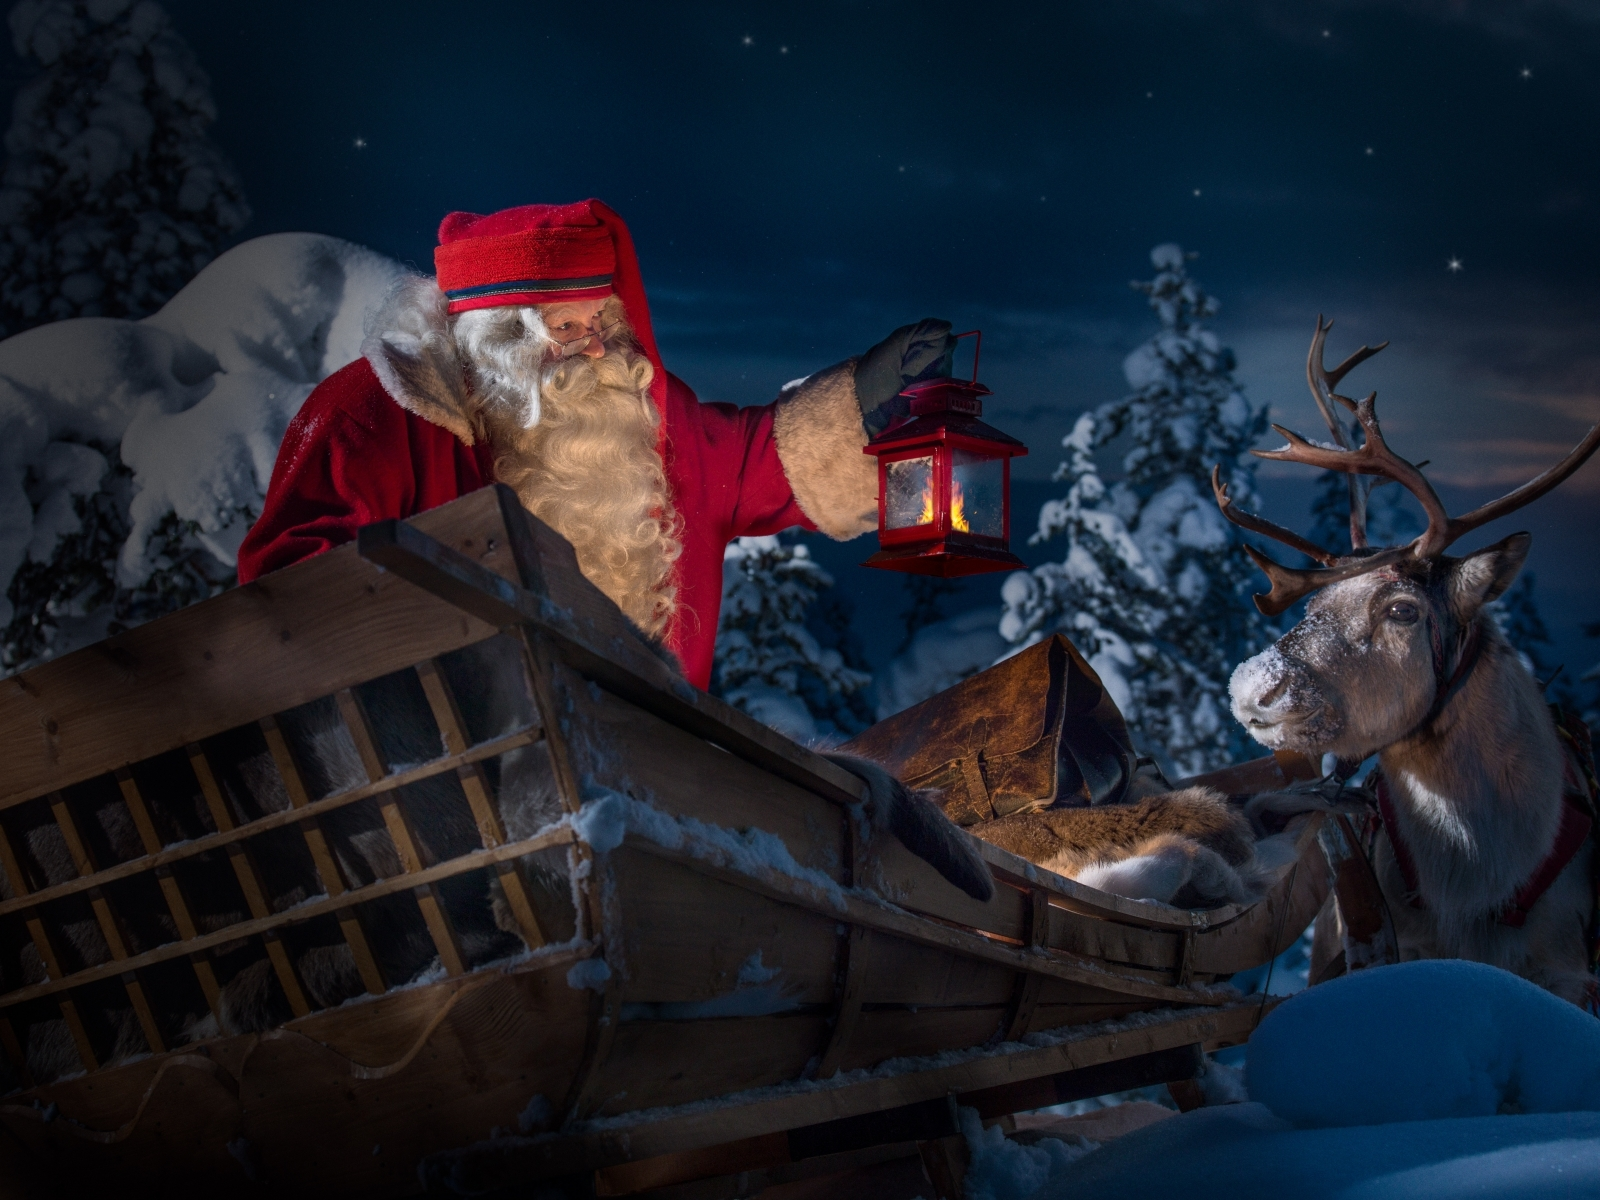 TRACK SANTA: He's on the move! View the NORAD Santa tracker